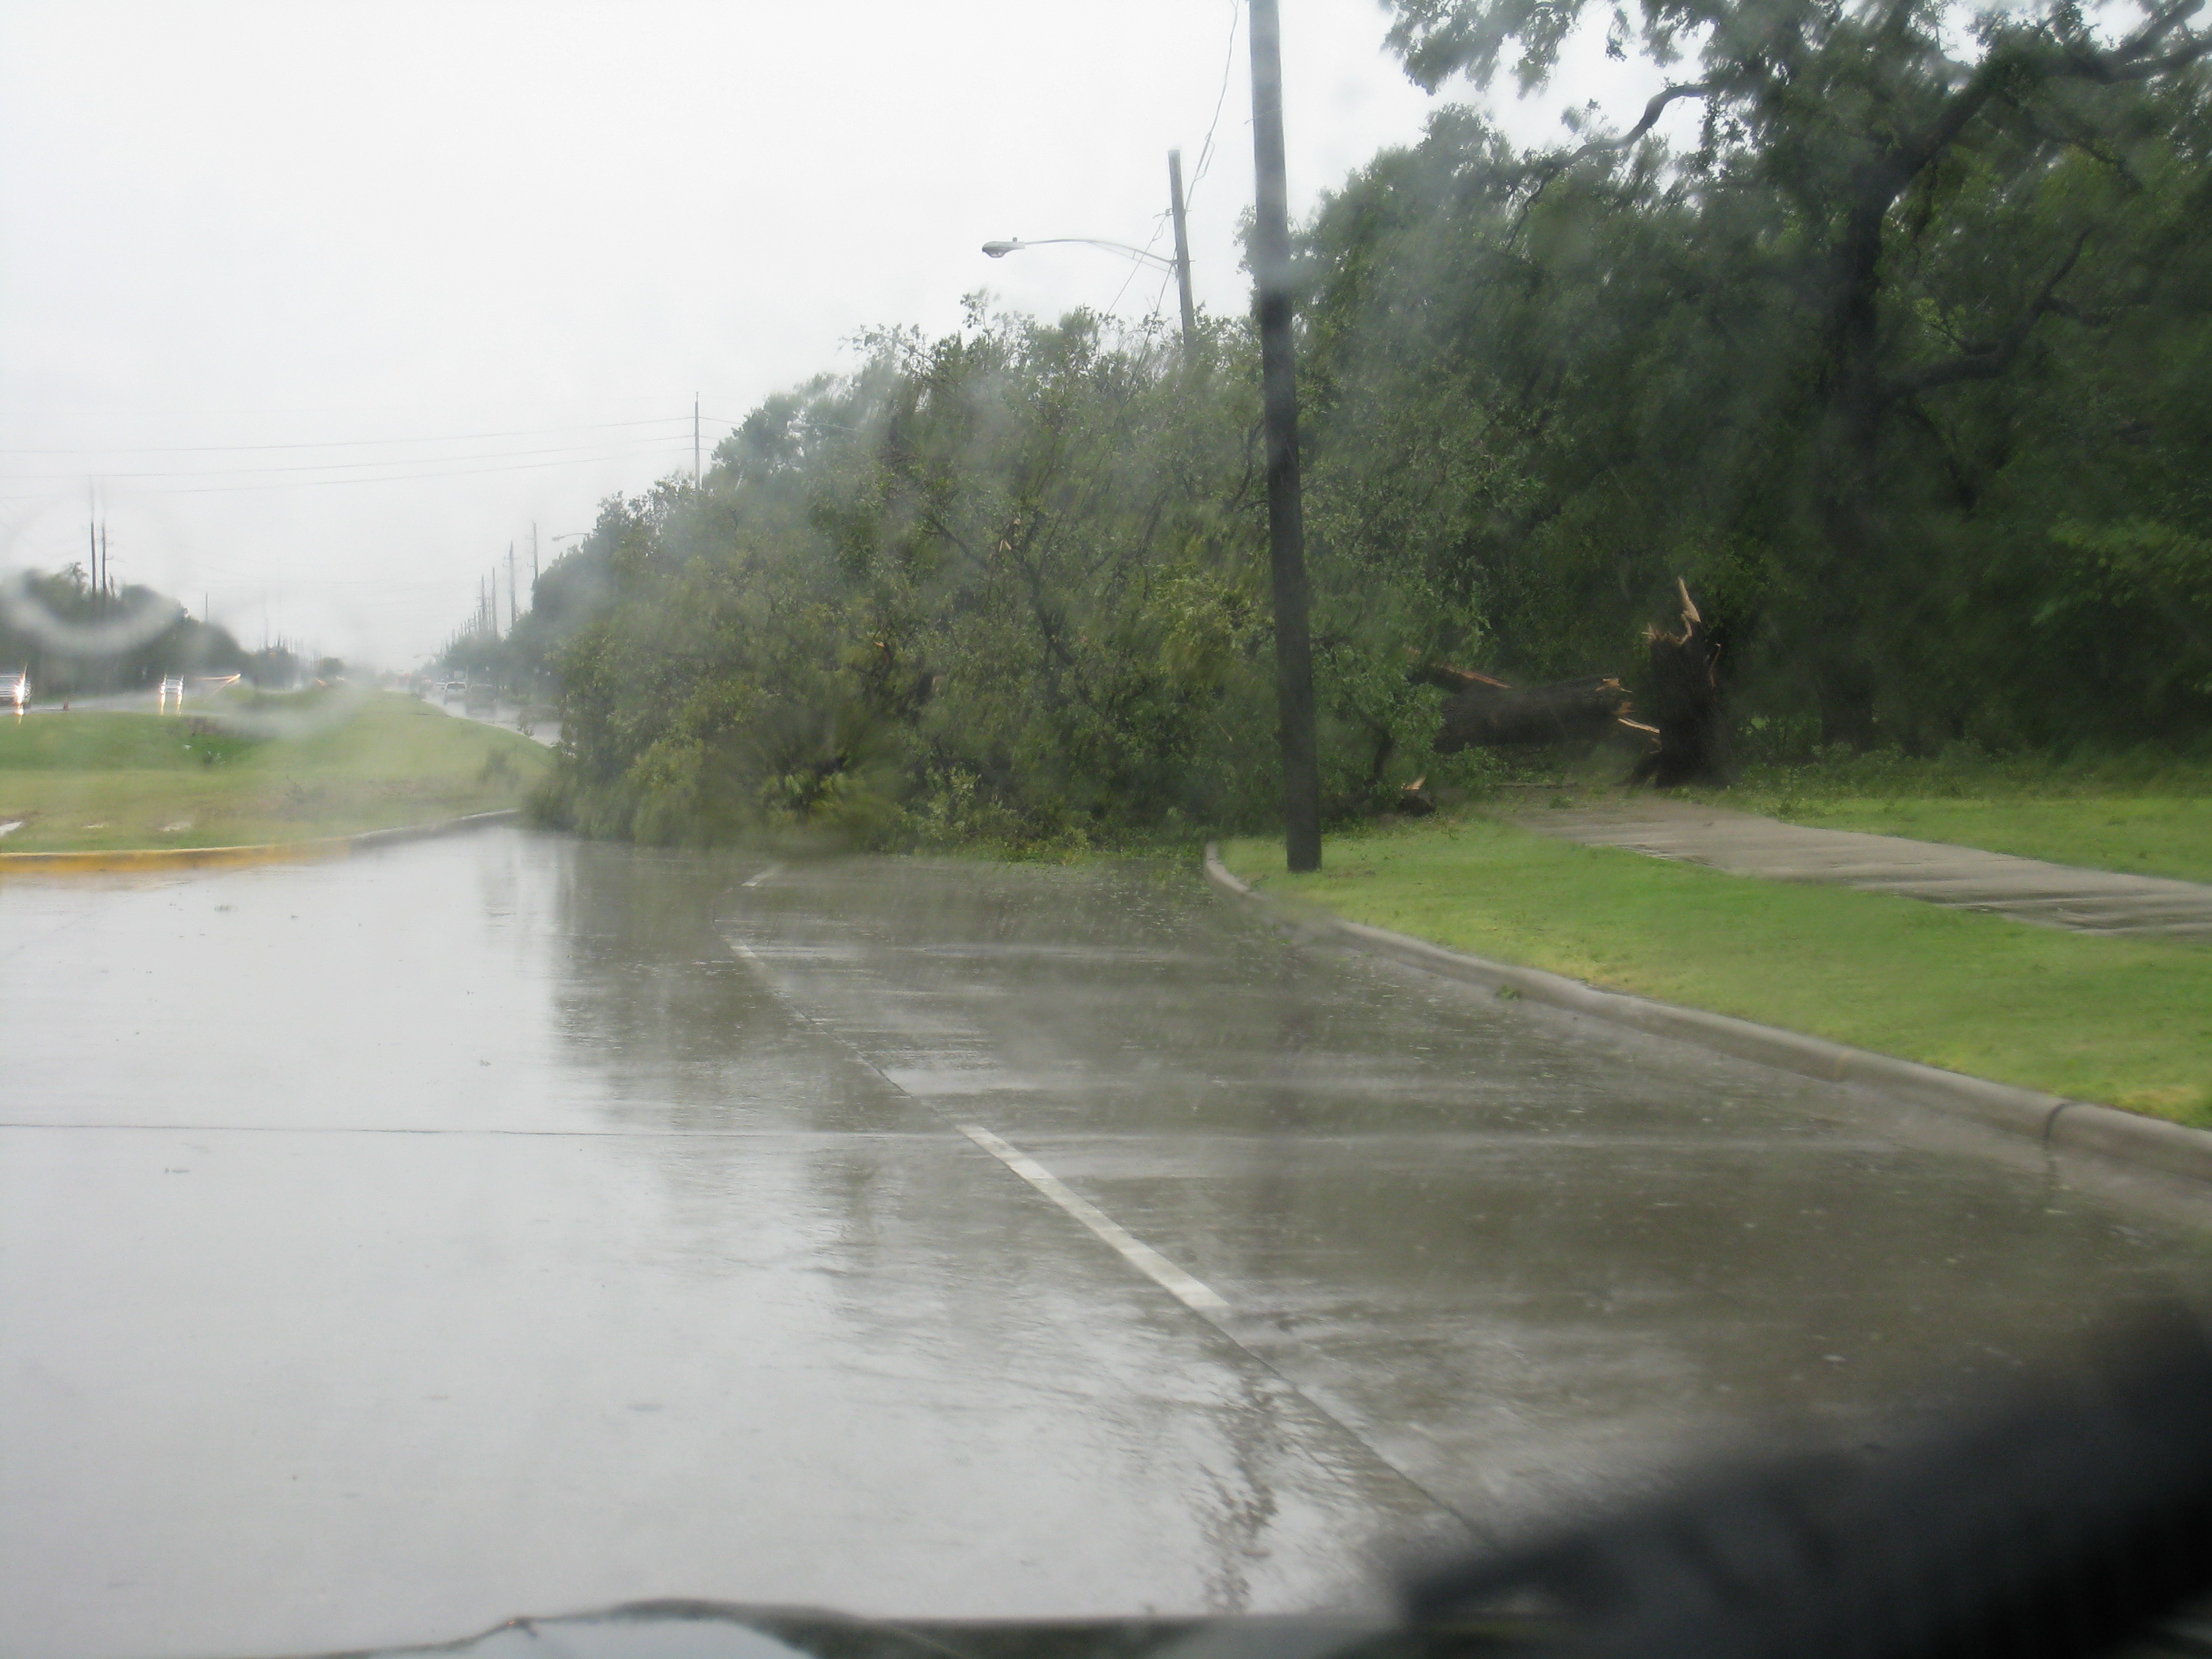 Tree at Almeda just past MacGregor heading south